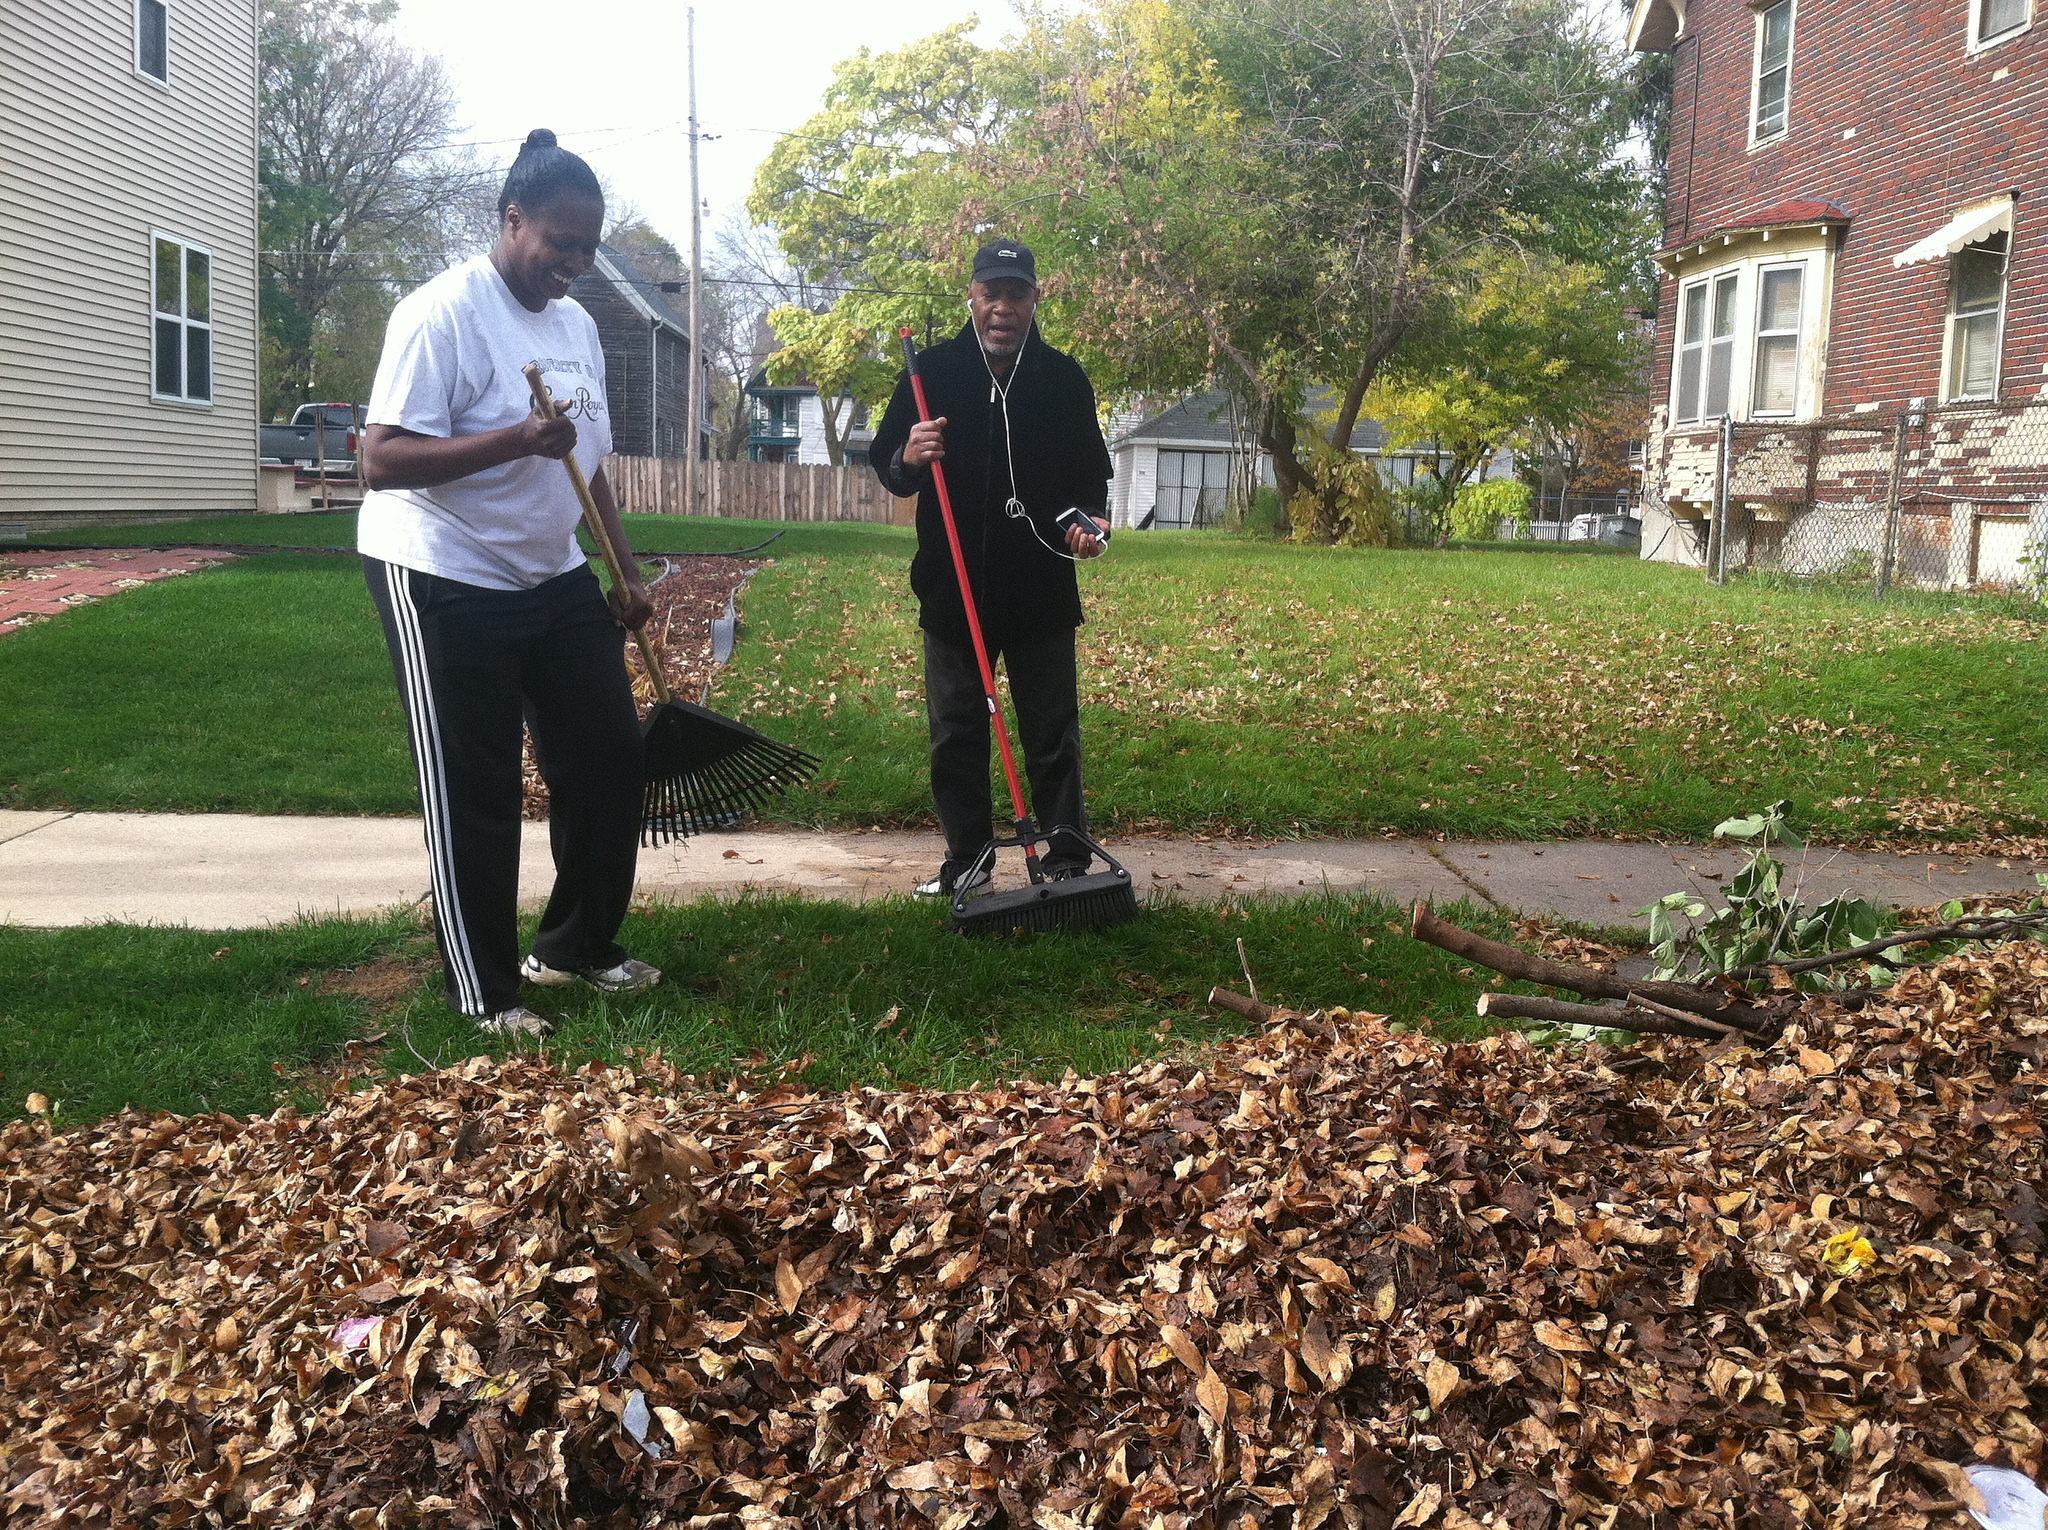 Gladys Carroll-Weathersby, resident, and Jack Hill, son of a resident, raking leaves on the 2400 block of N. 16th Street